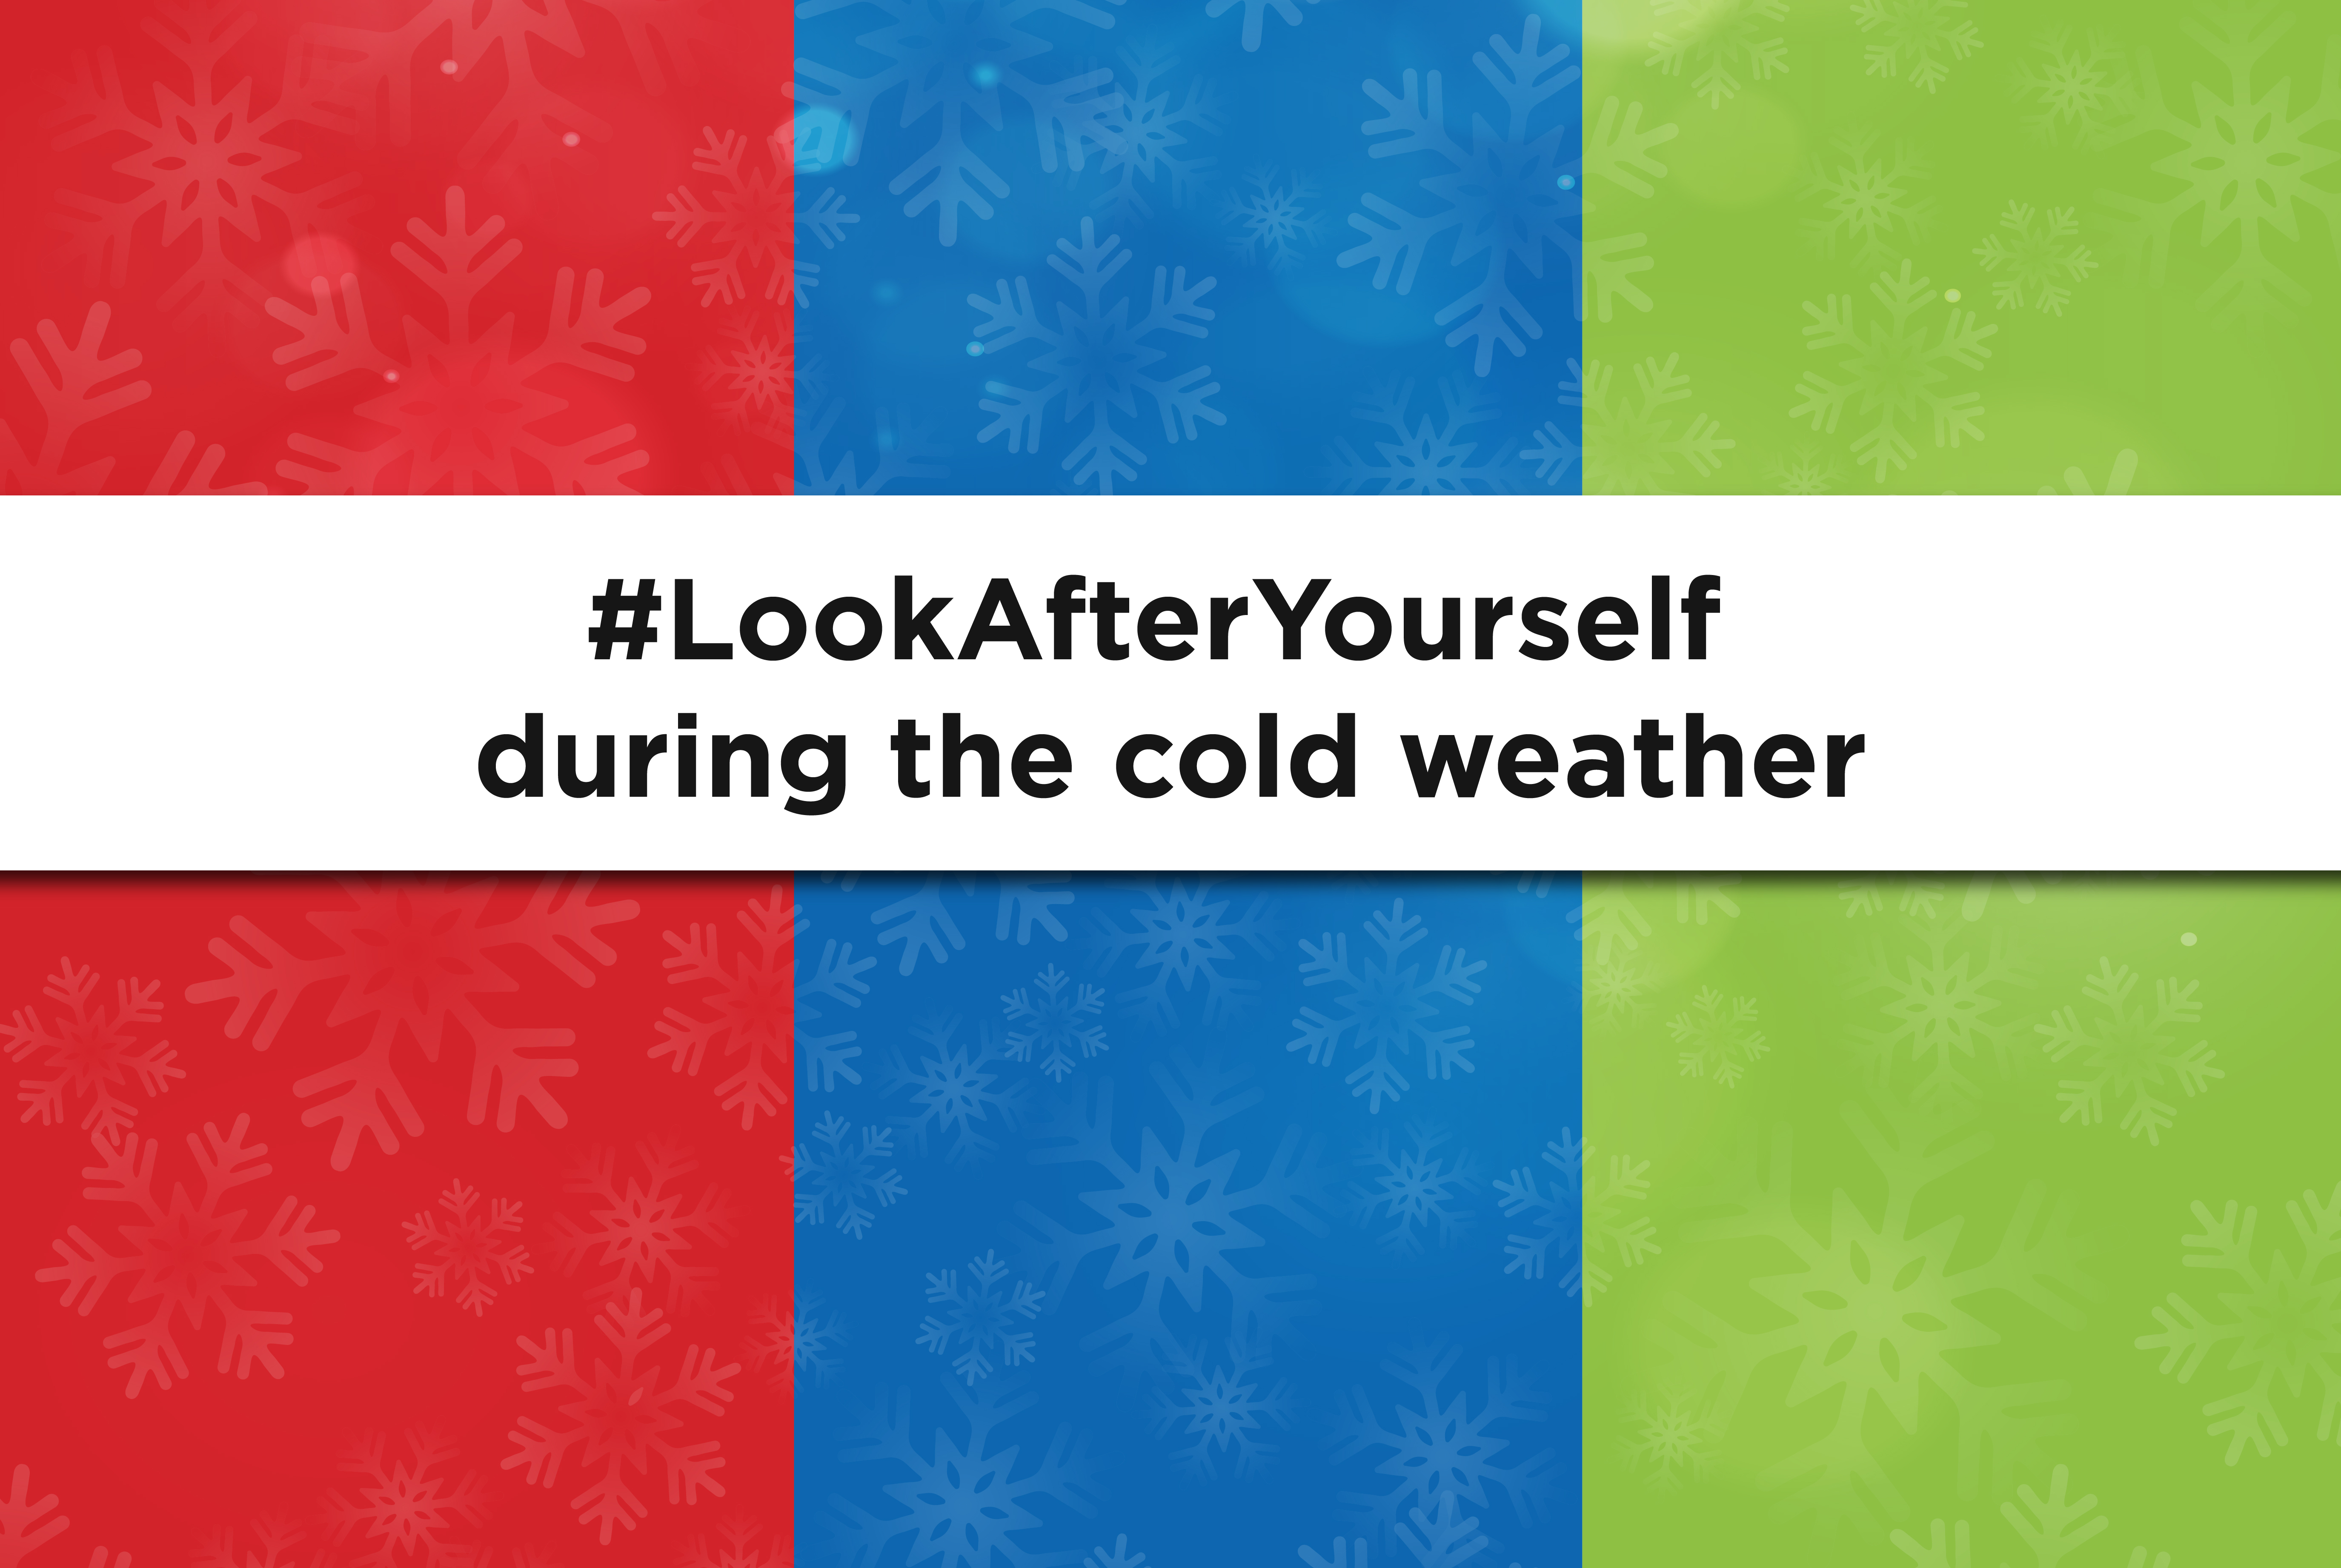 Look after yourself during the cold weather